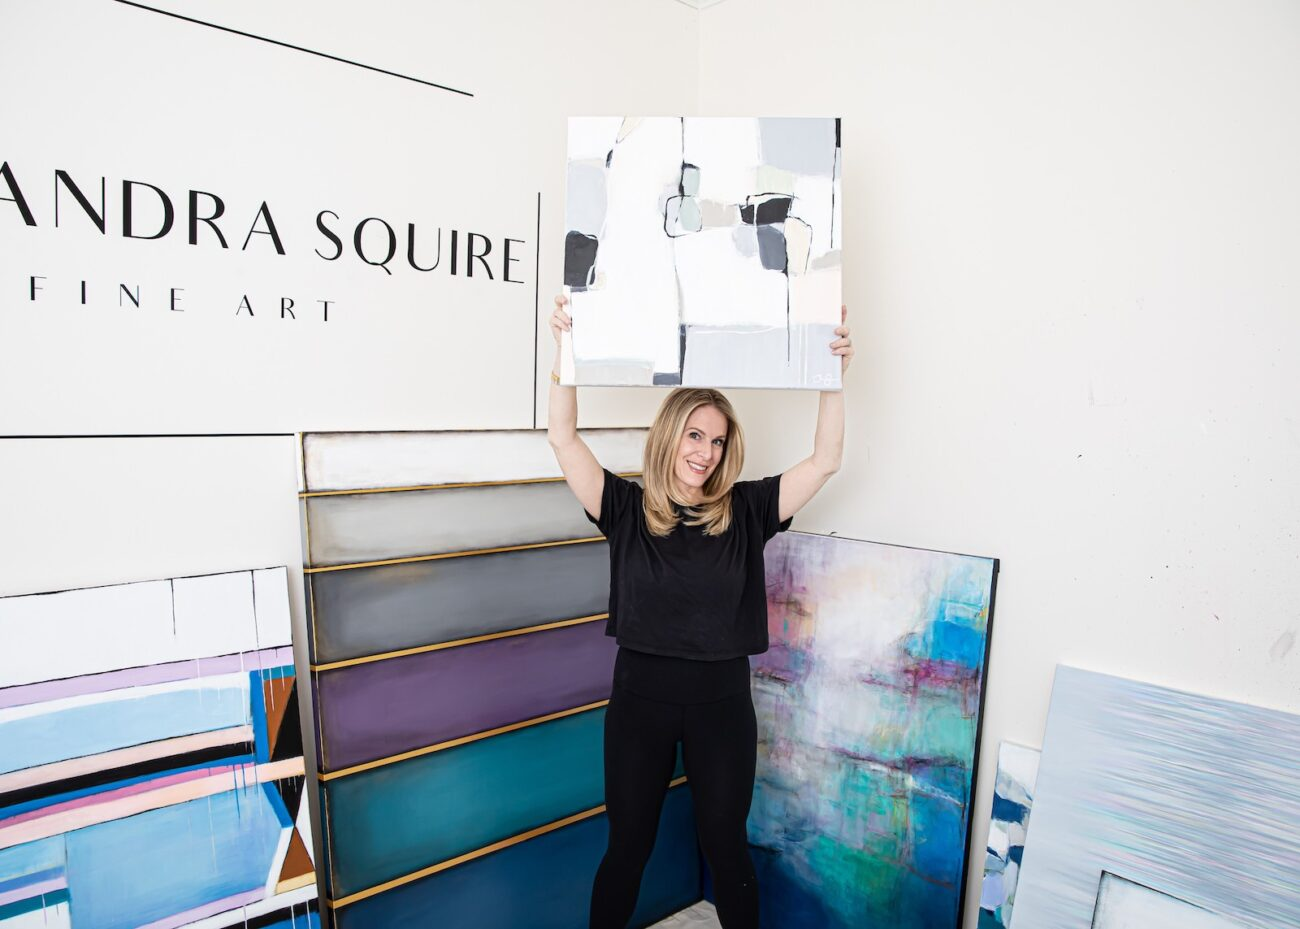 Most people find abstract art to be an enigma. Alexandra Squire has harvested this art form and made it her own. Inspire yourself and follow her journey.